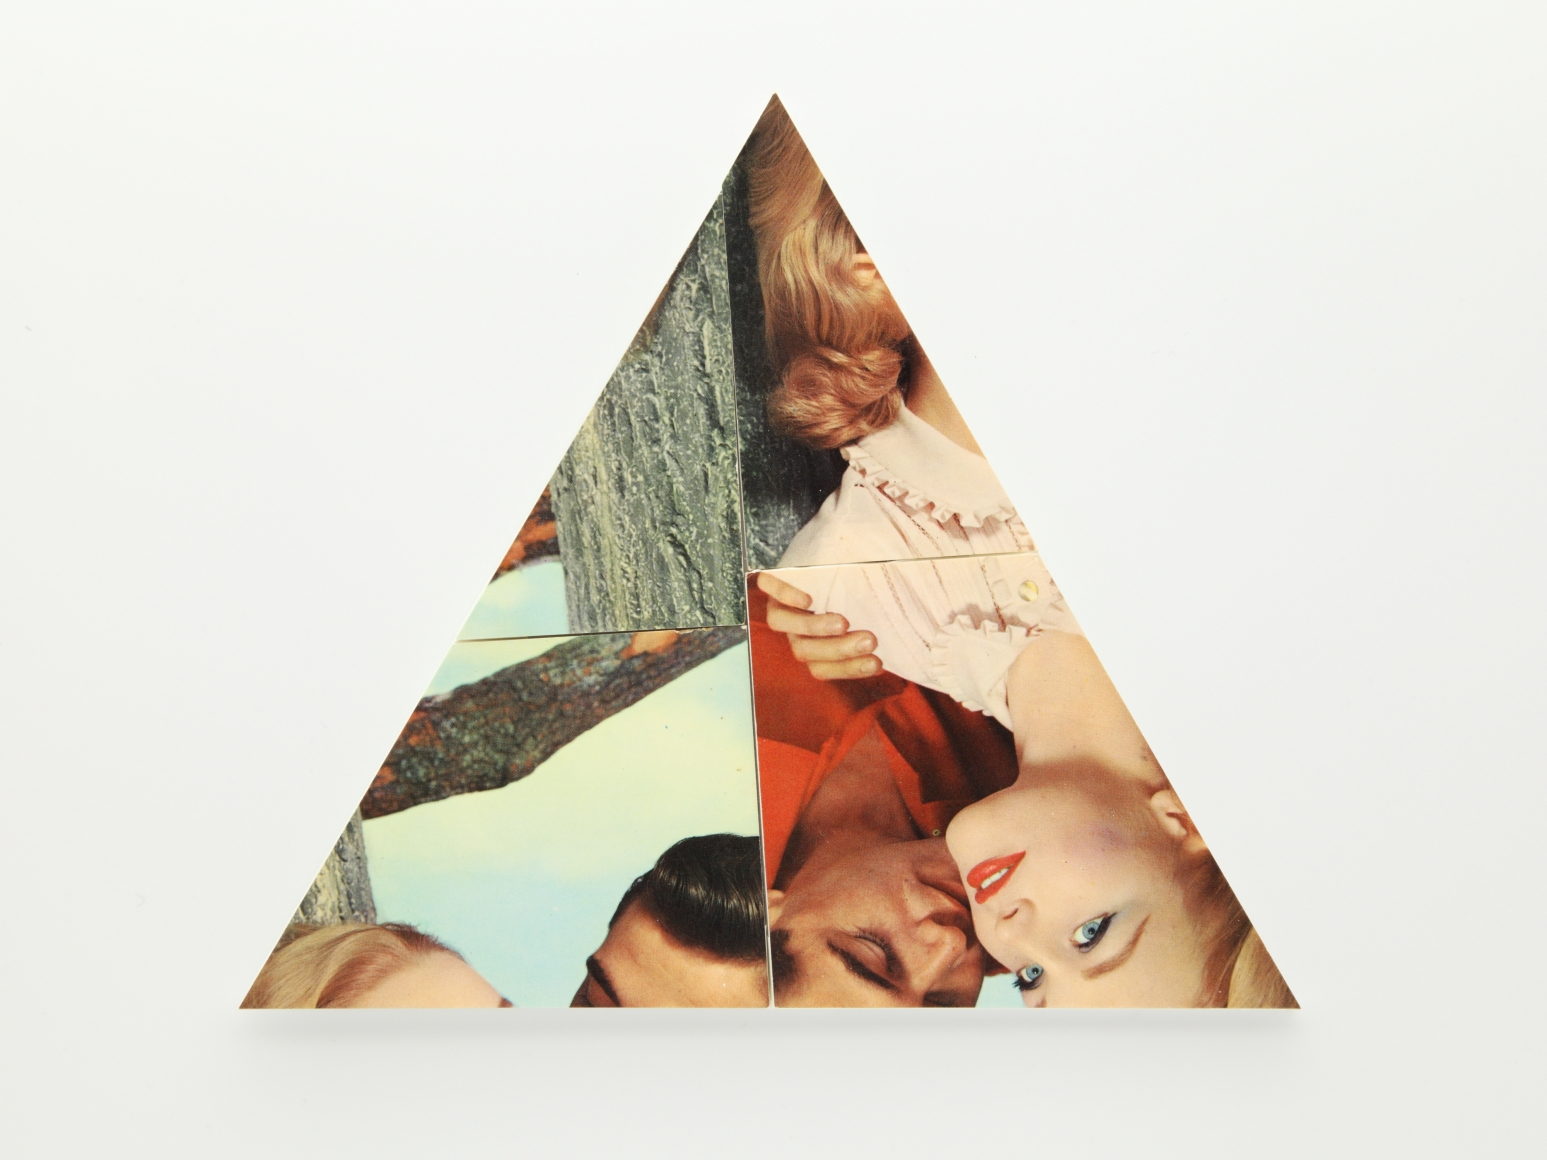 © Kensuke Koike,  Triangle , 2018. Cut postcard collage, 7 1/2 x 6 1/2 inches. Courtesy of the artist and Postmasters Gallery.